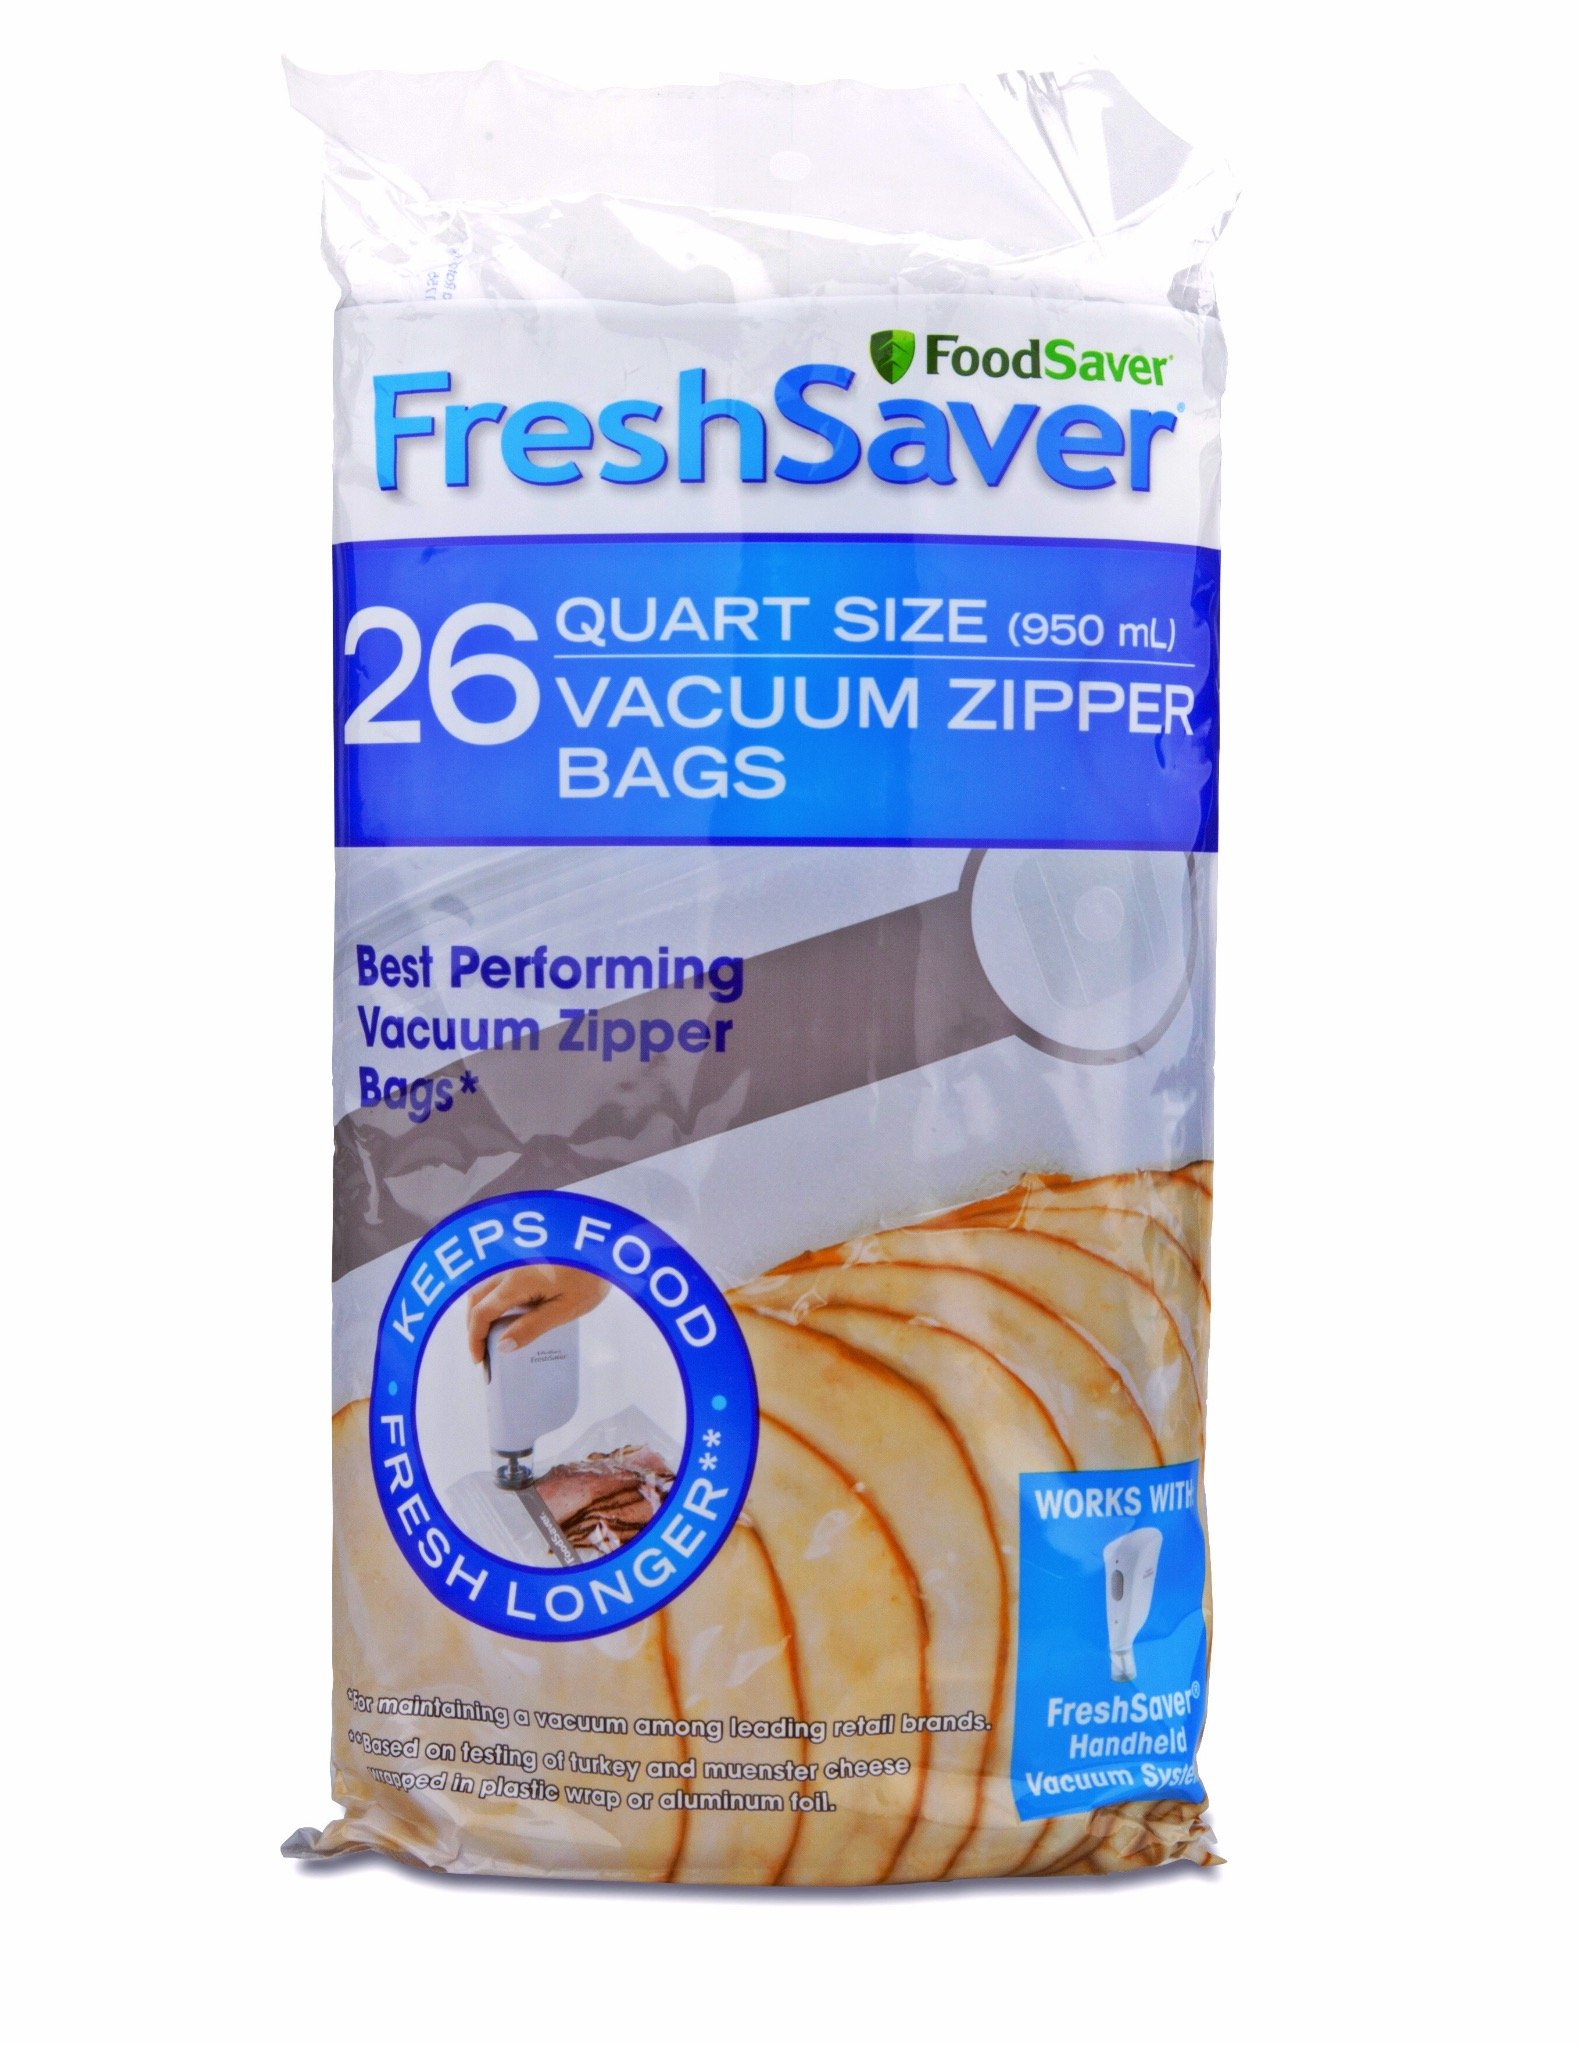 FoodSaver FSFRBZ0236-000R 1-Quart FreshSaver Vacuum Zipper Bags, 26 Count (Package might vary) by FoodSaver